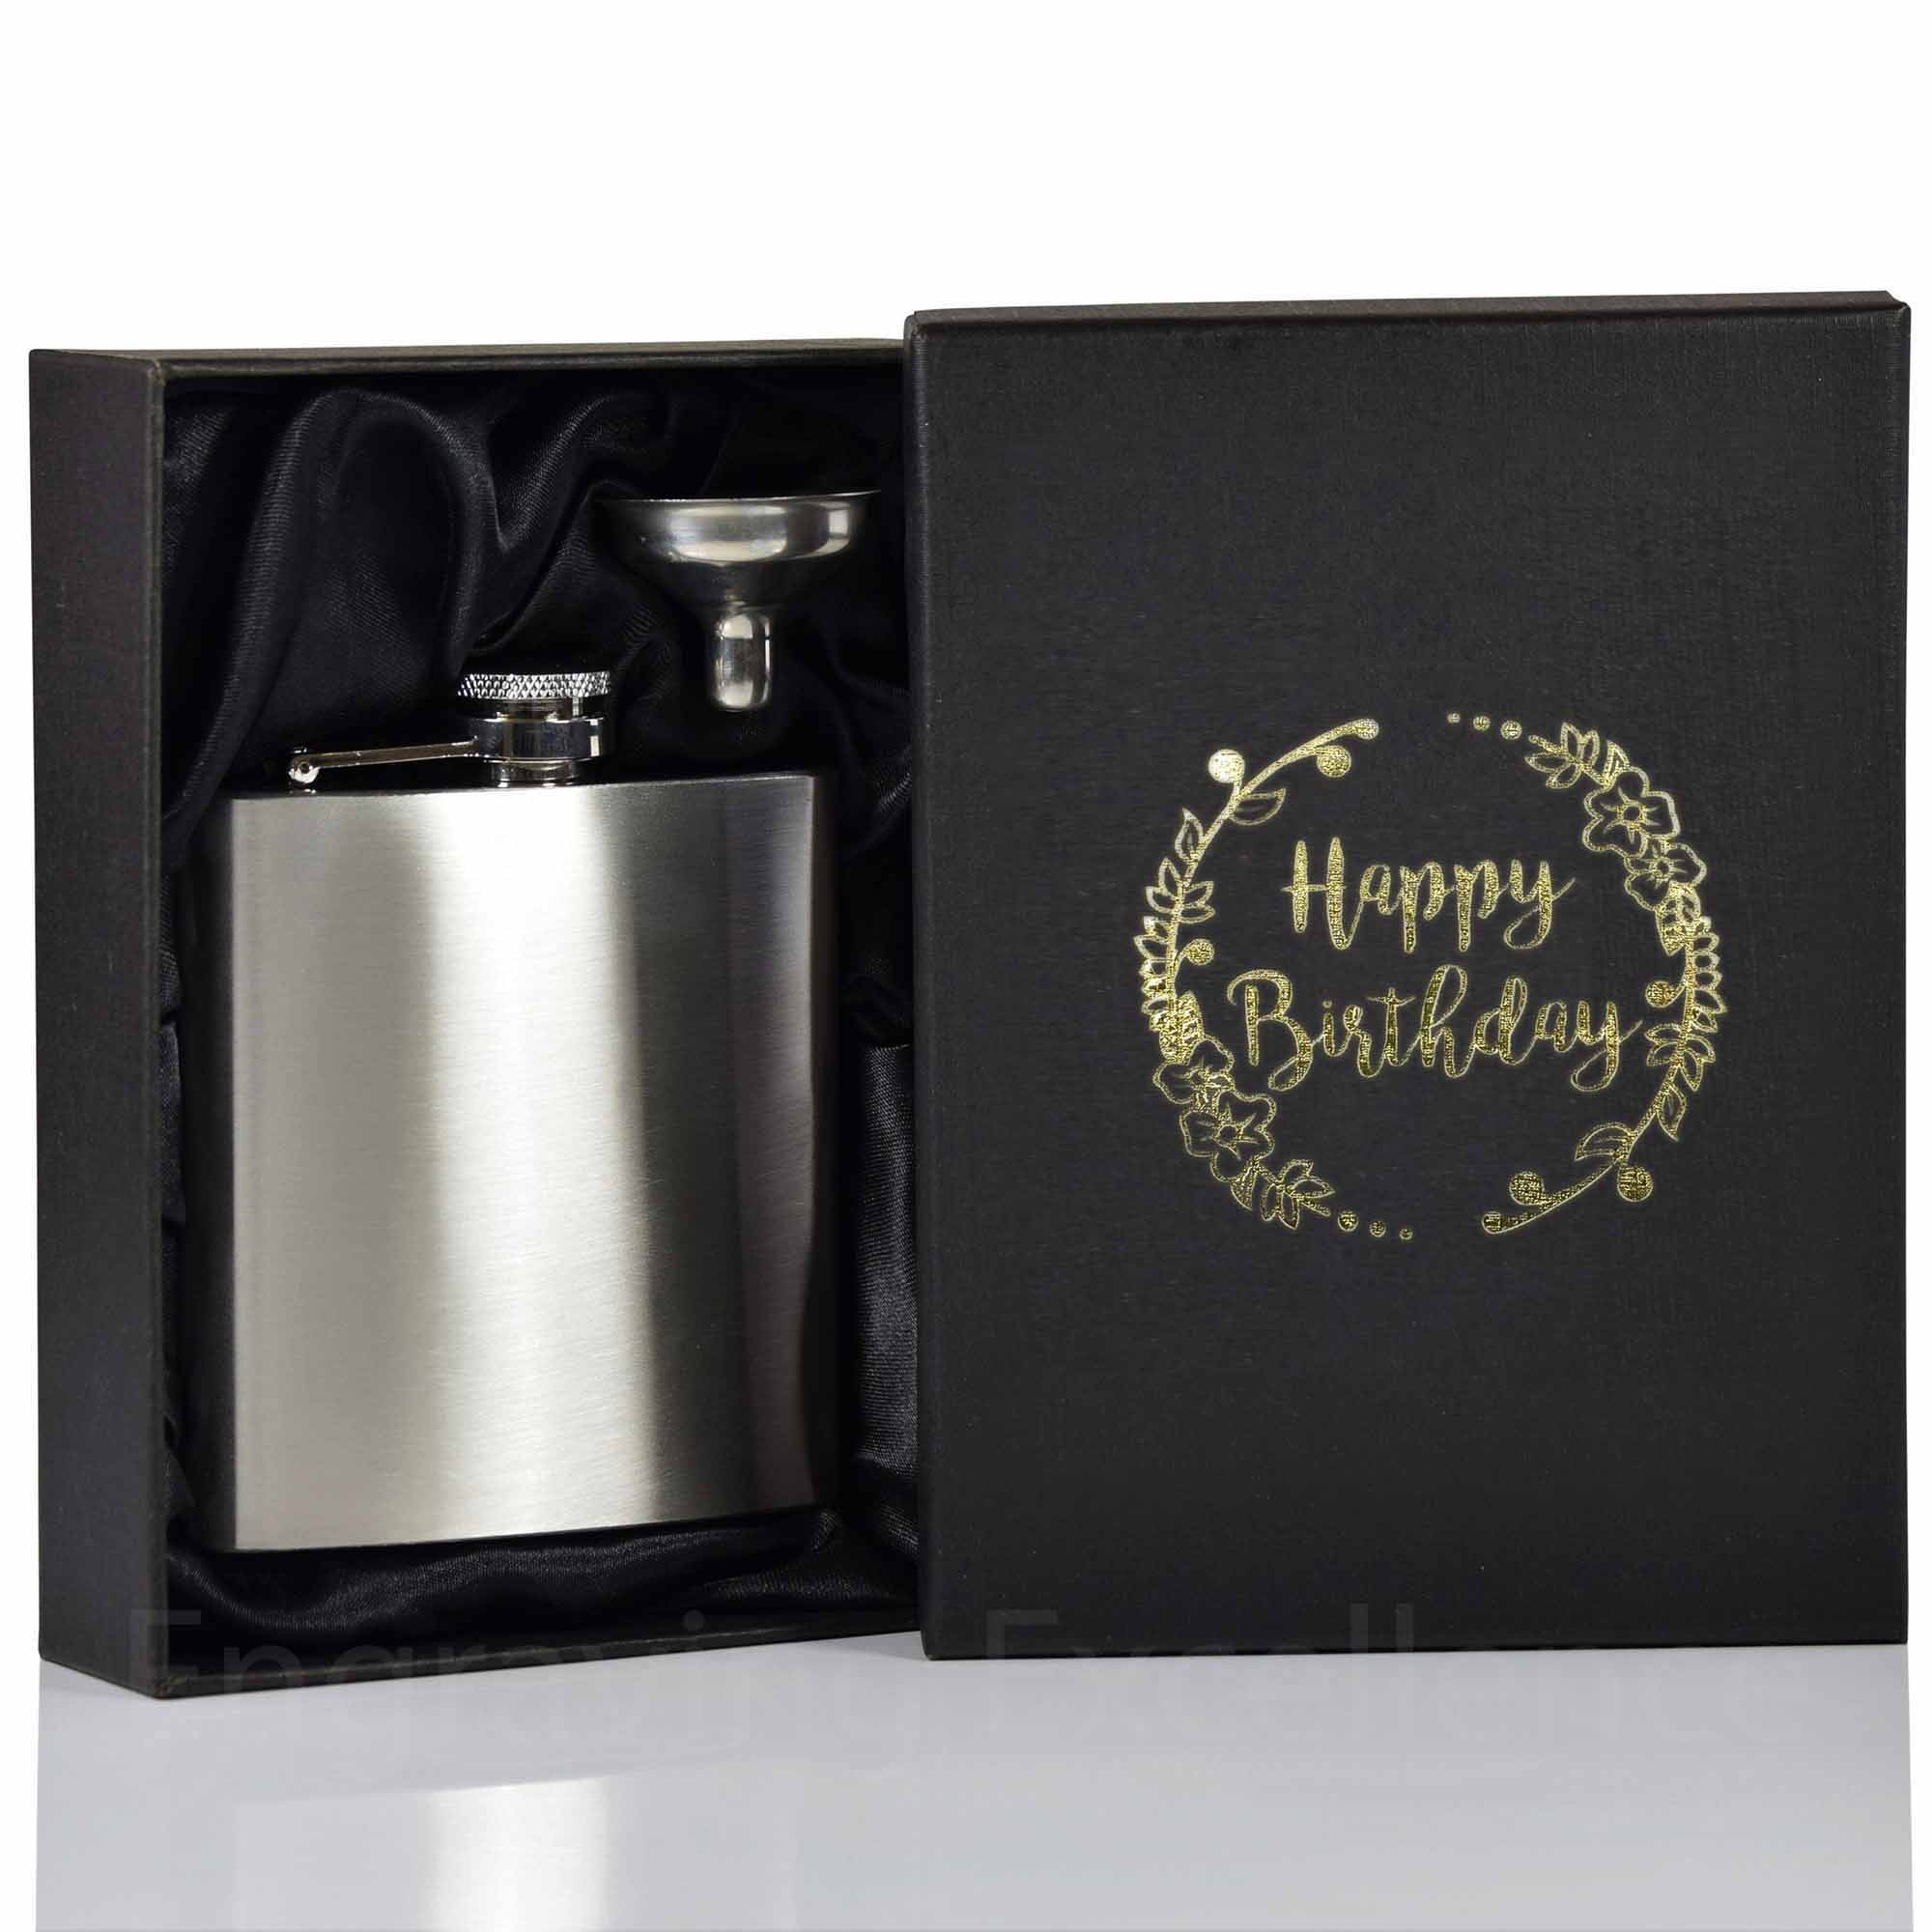 6oz Hip Flask with Funnel and Gift Box - Happy Birthday Printed Lid